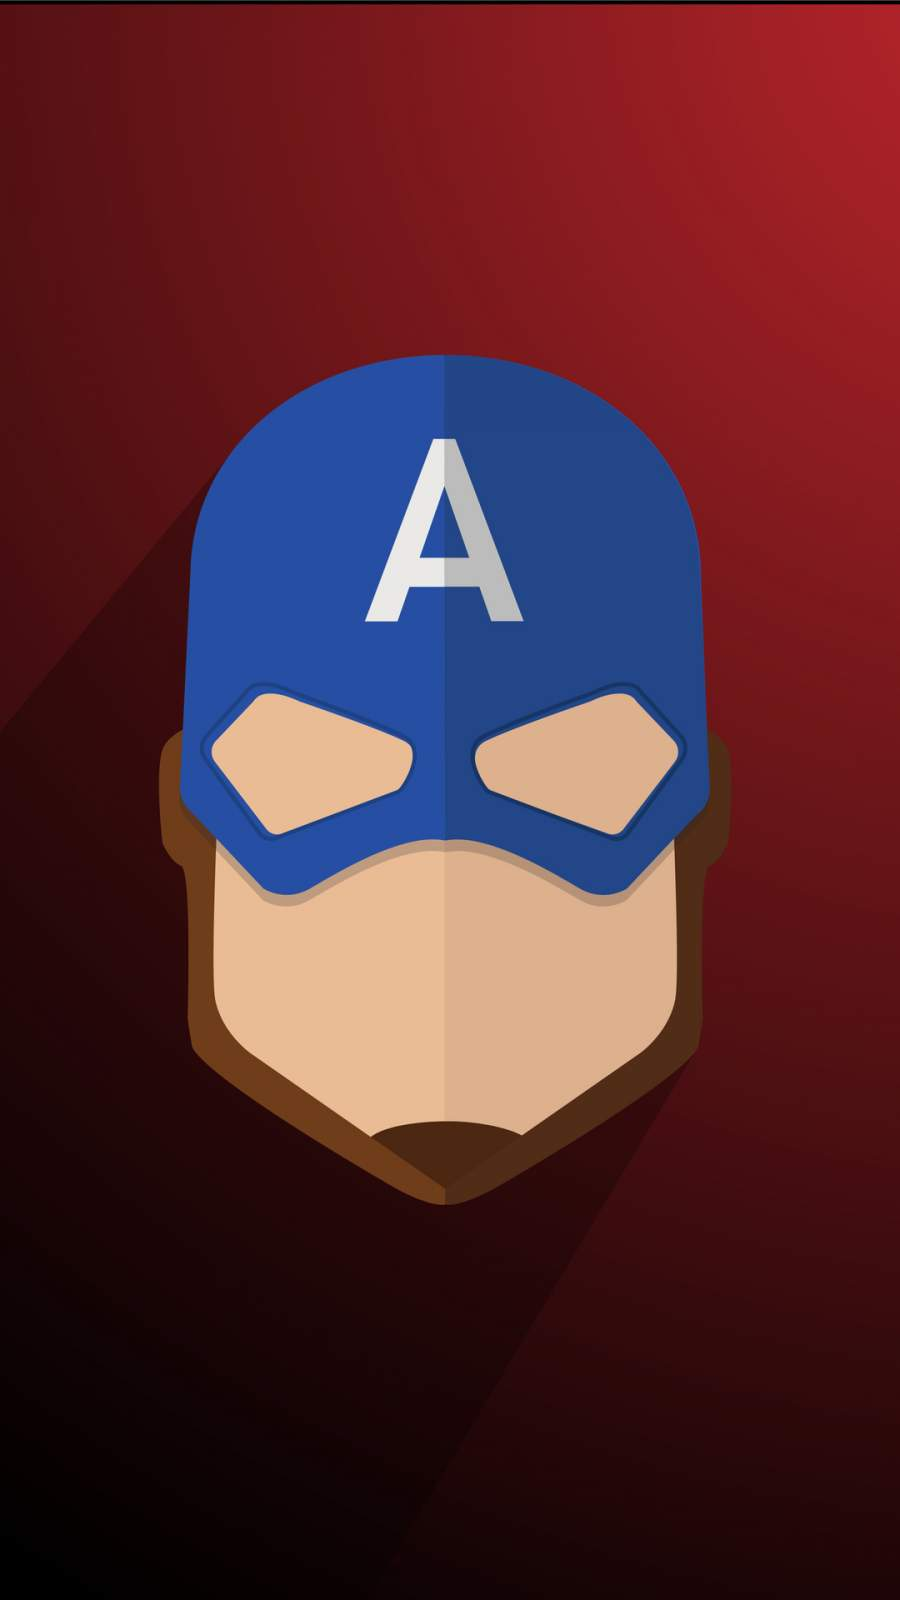 Captain America Minimalist iPhone Wallpaper